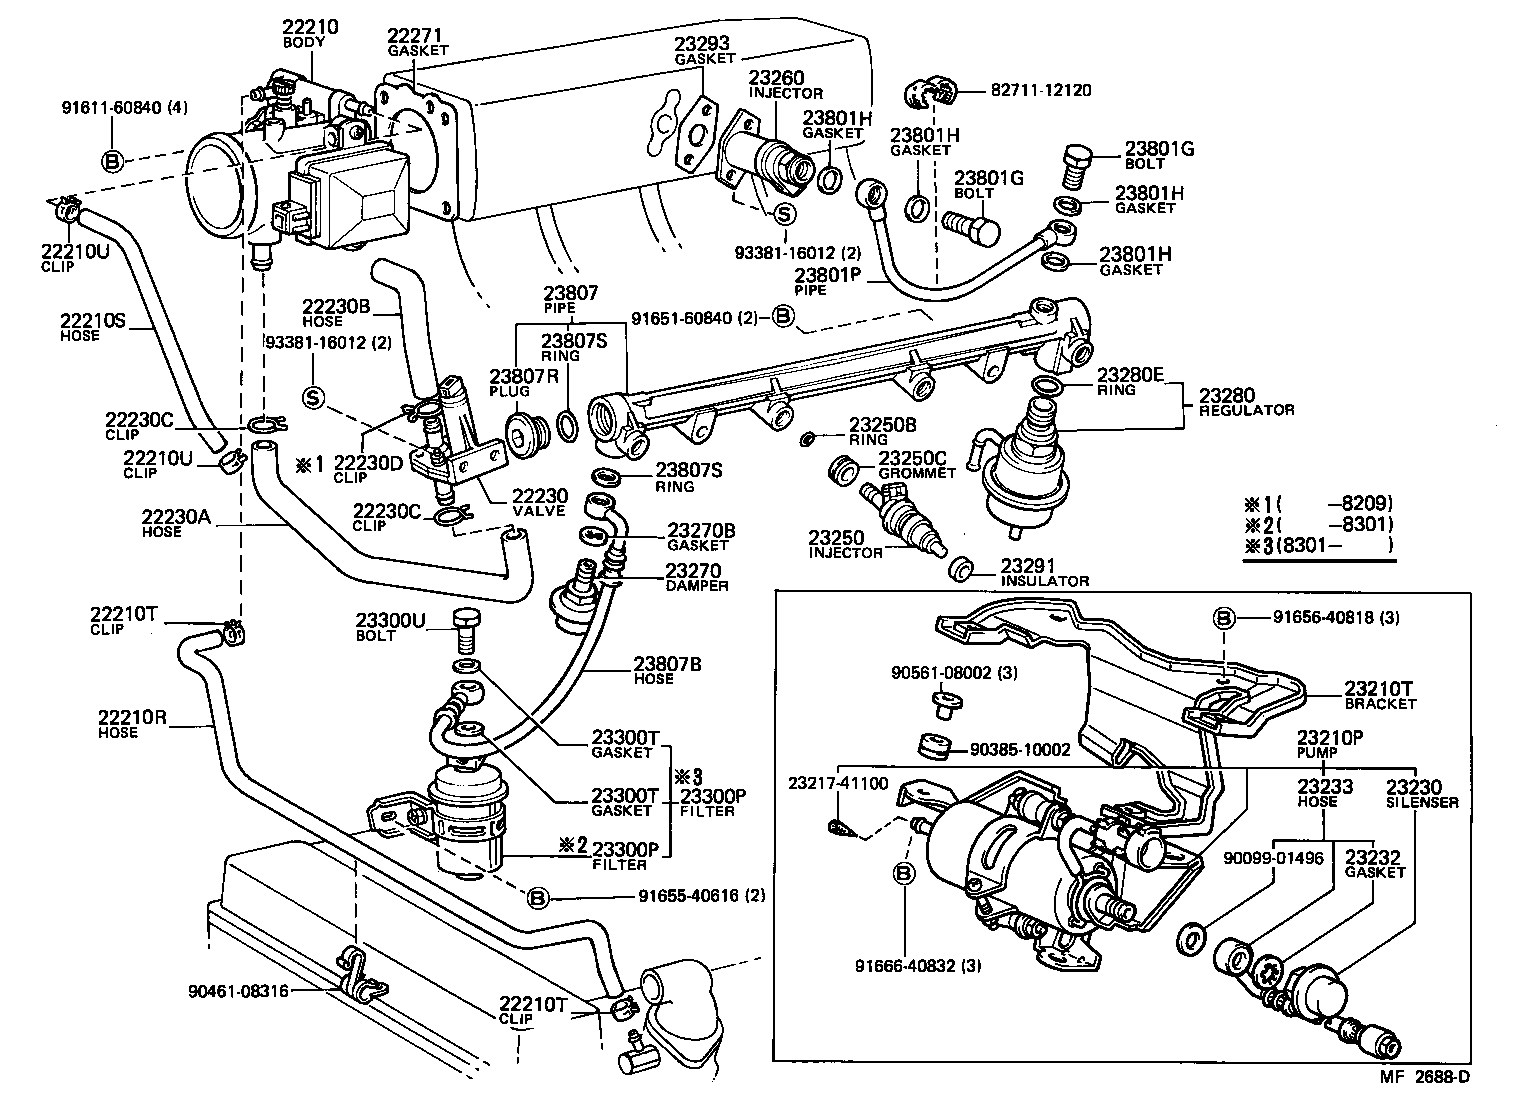 1988 toyota supra electrical diagram